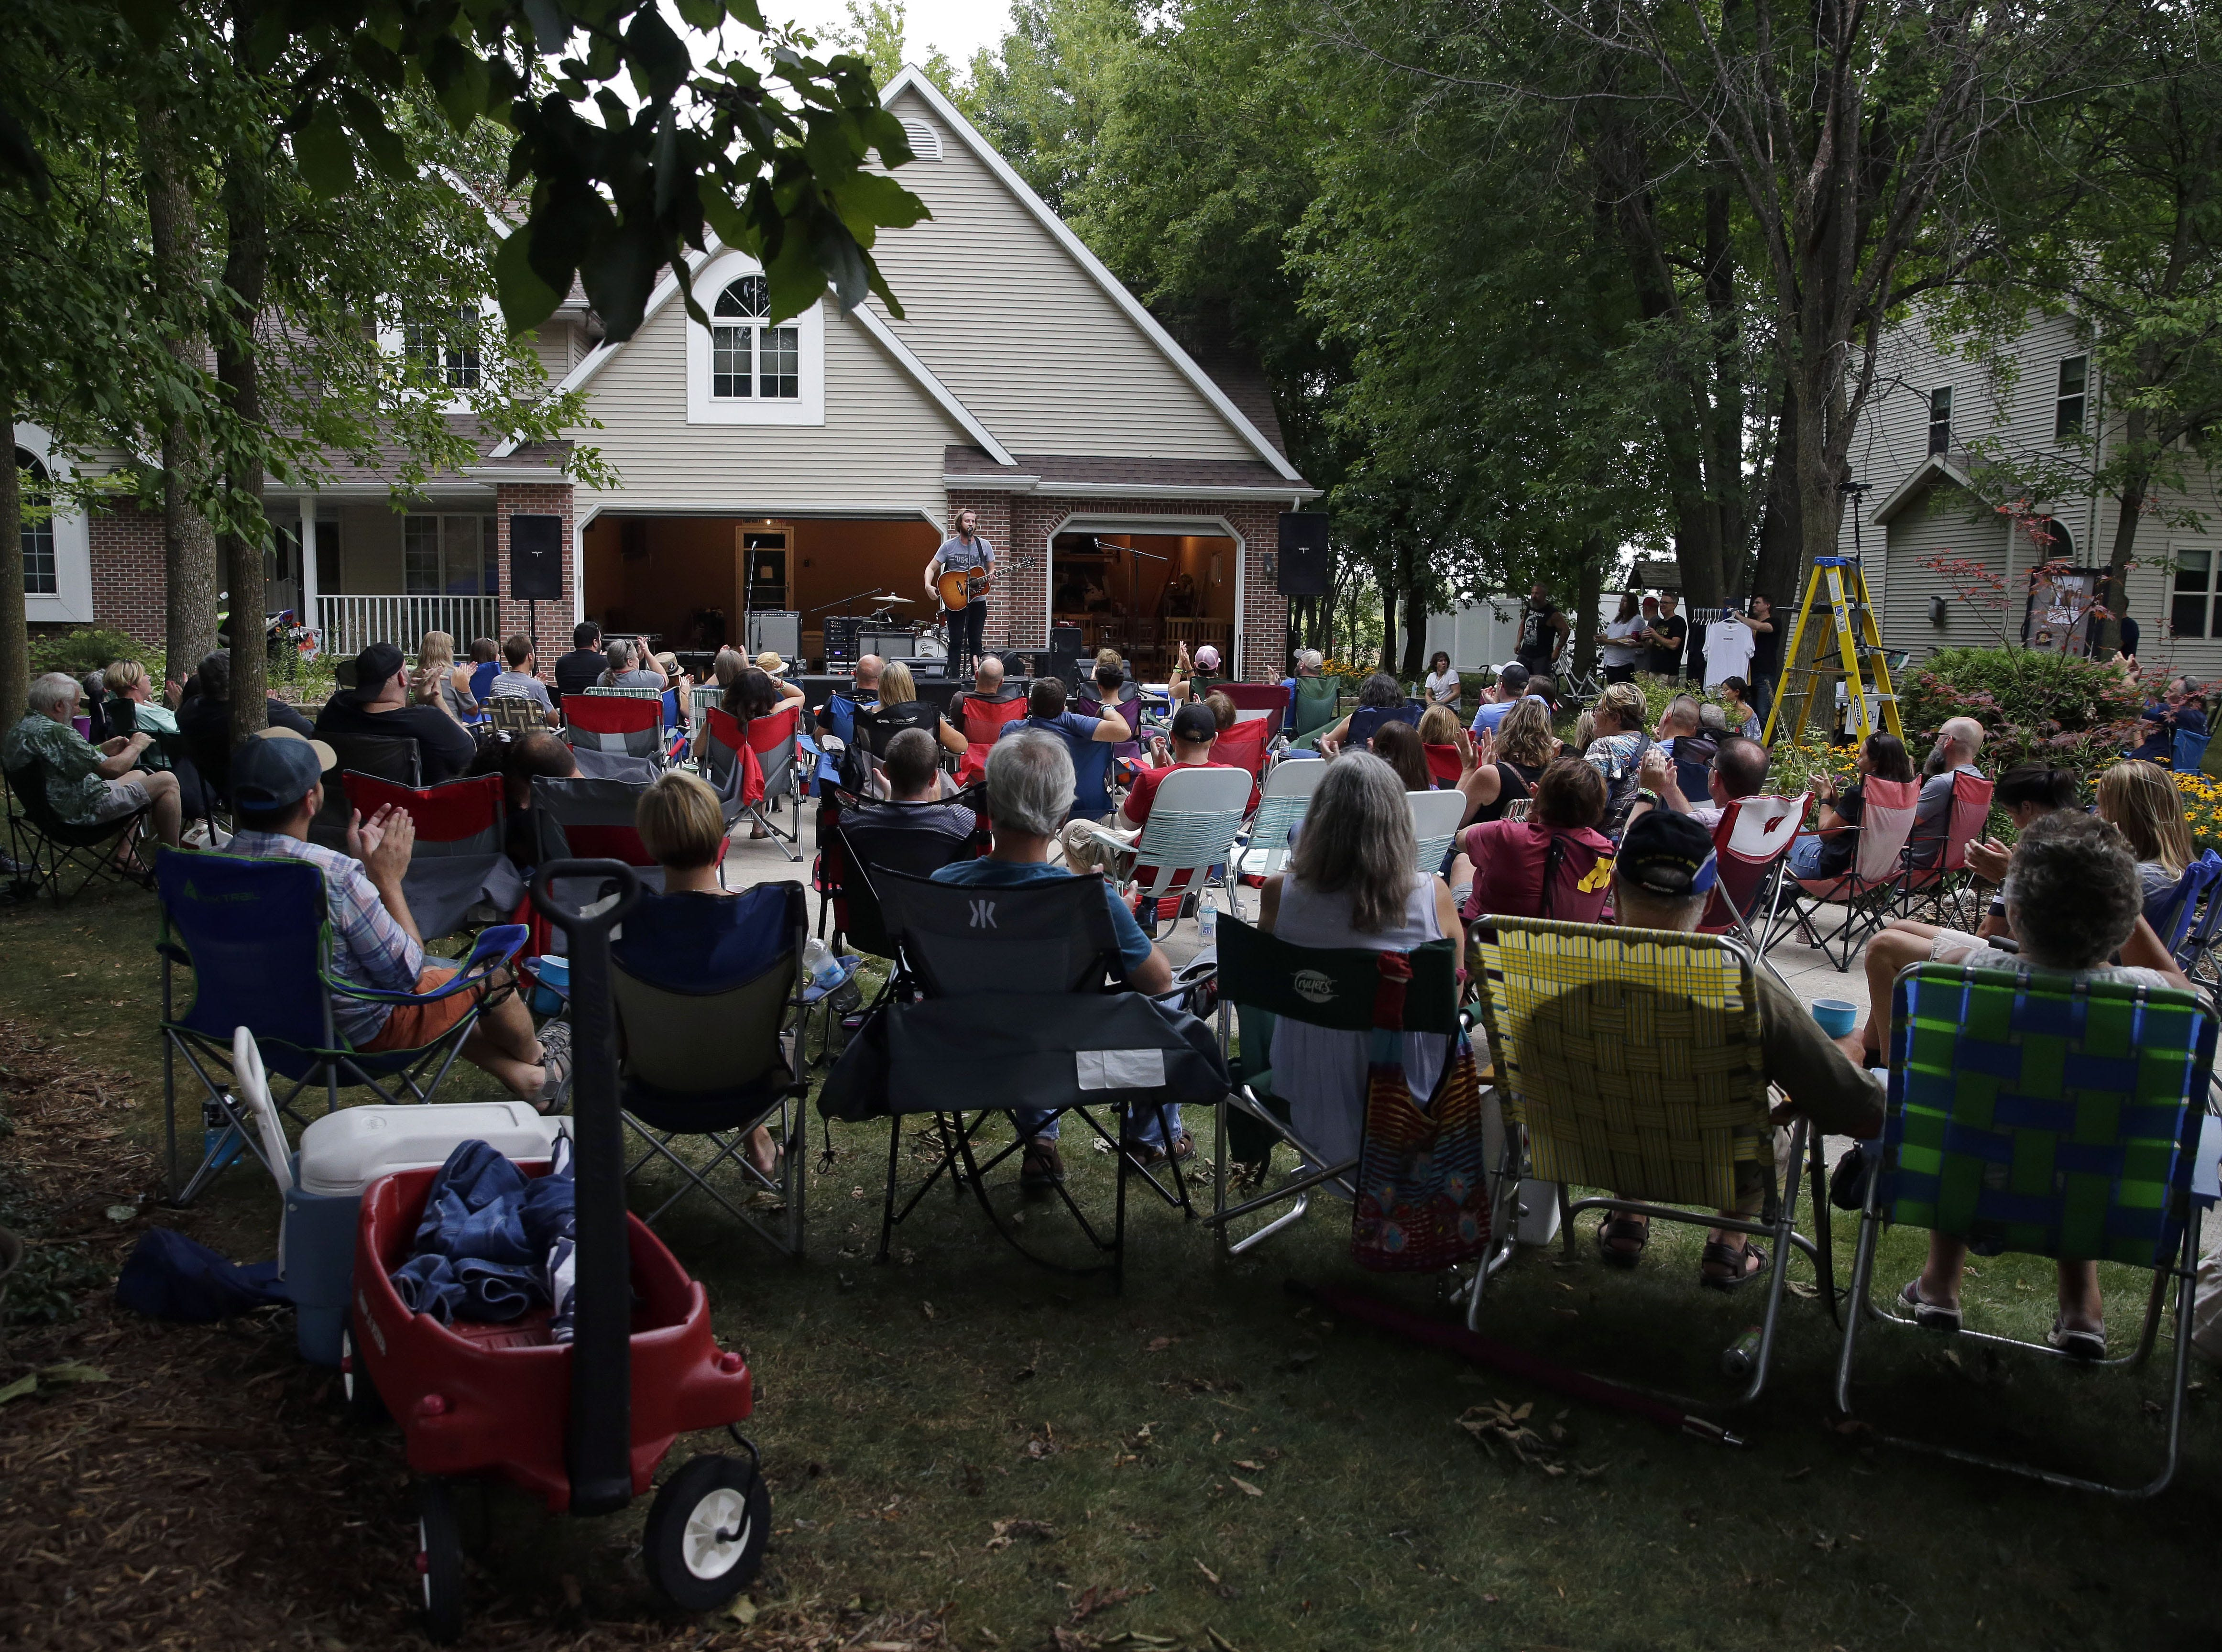 Nashville artist Carter Hulsey plays to a crowd of about 150 people at the Appleton home of Todd Van Hammond in late August. Van Hammond has been inviting bands to play inside and outside his house for about a decade.